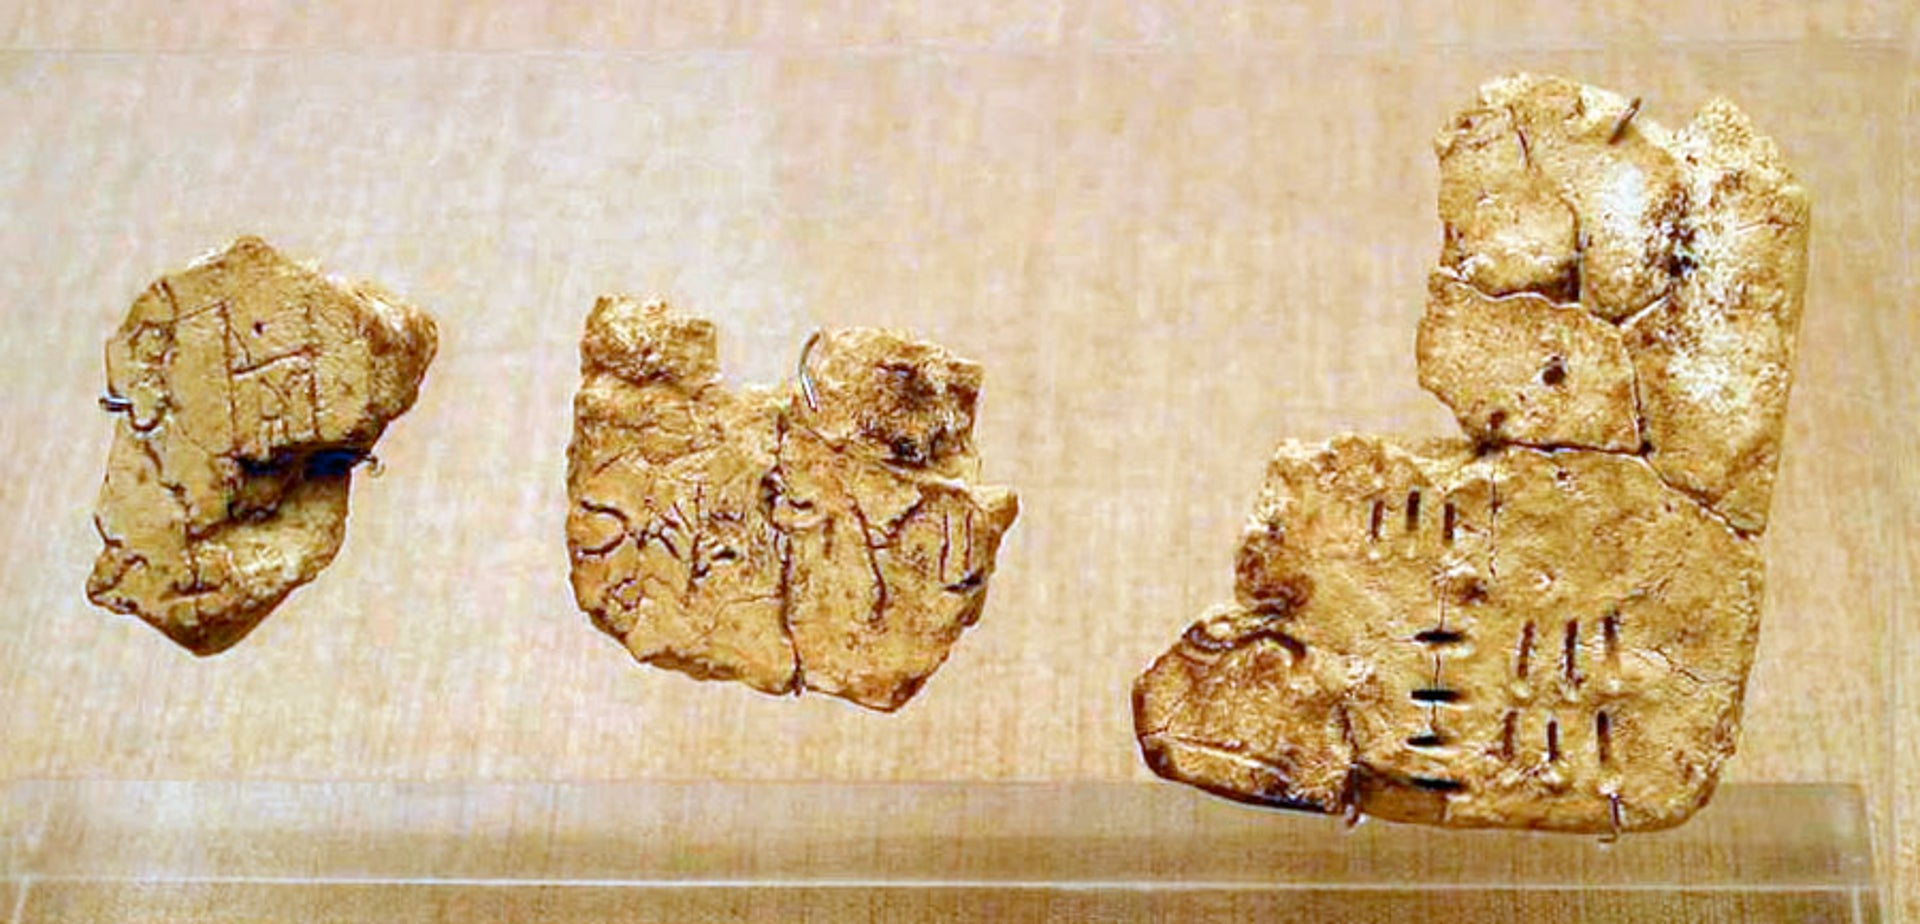 Linear A incised on tablets found in Akrotiri, Santorini.